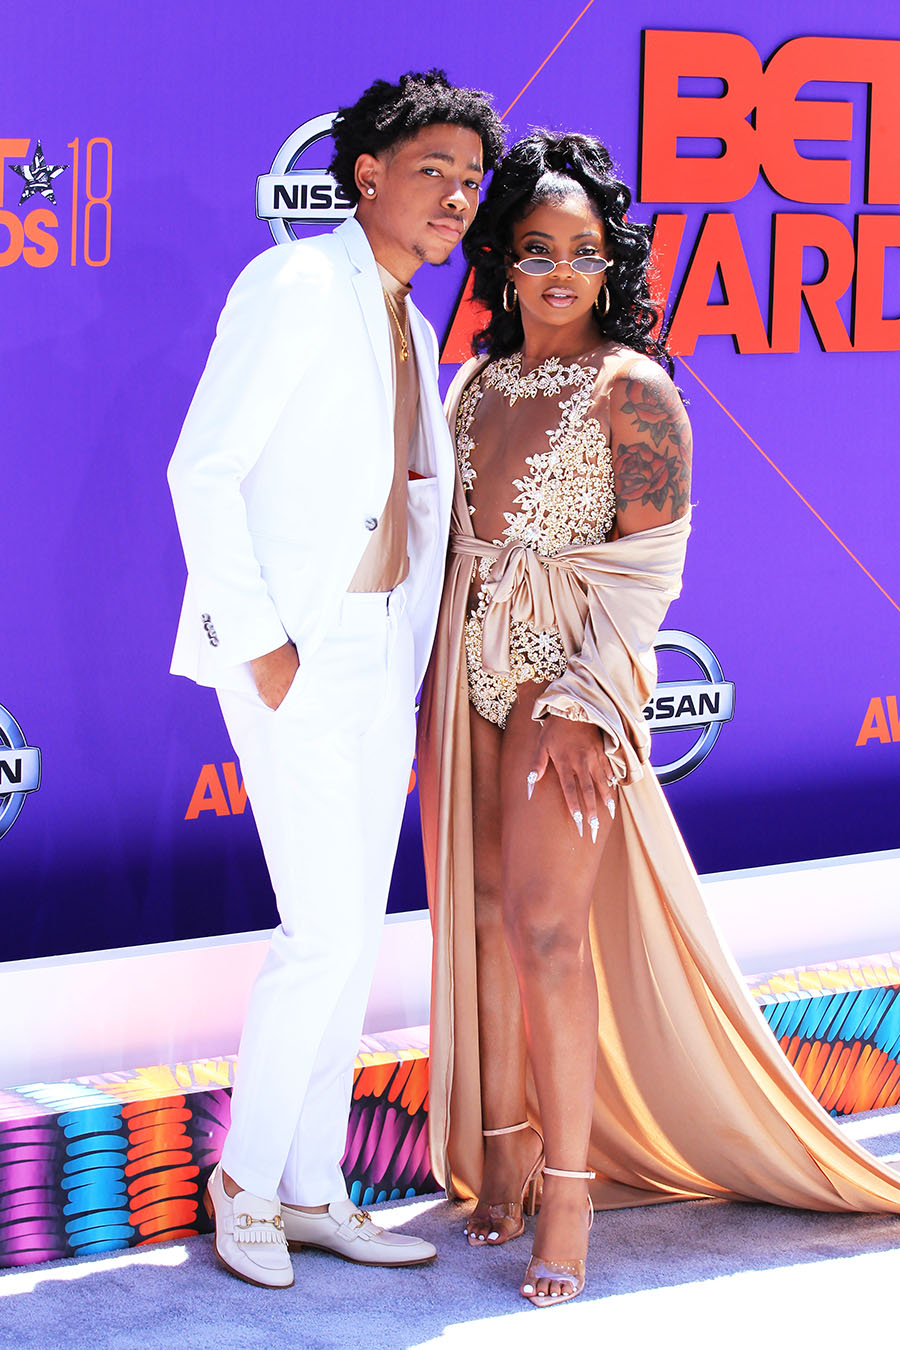 Interior Design Jobs Los Angeles Ken And De'arra Of Dk4l Attend The 2018 Bet Awards At